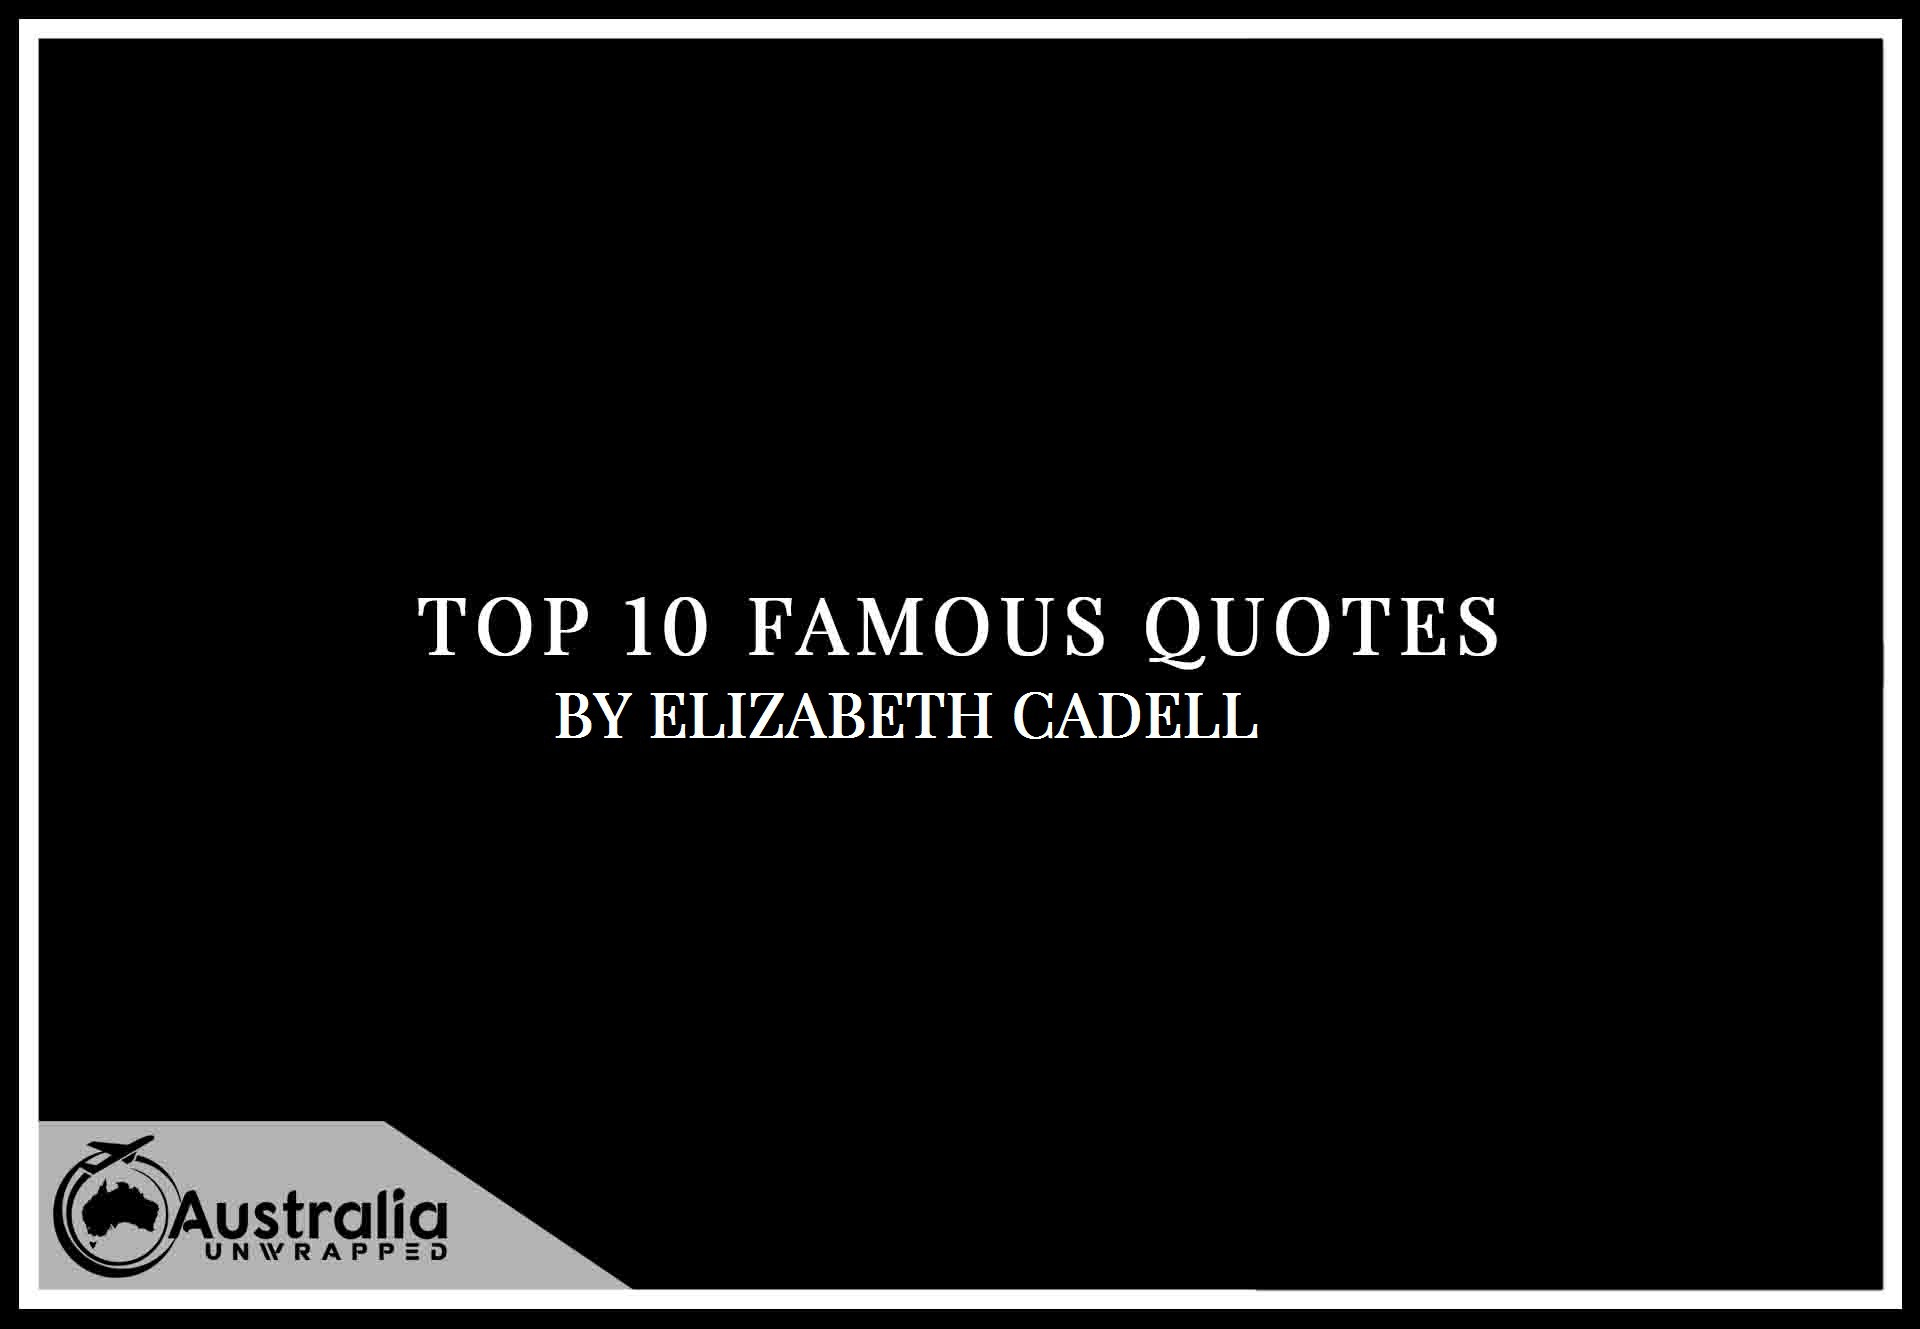 Elizabeth Cadell's Top 10 Popular and Famous Quotes